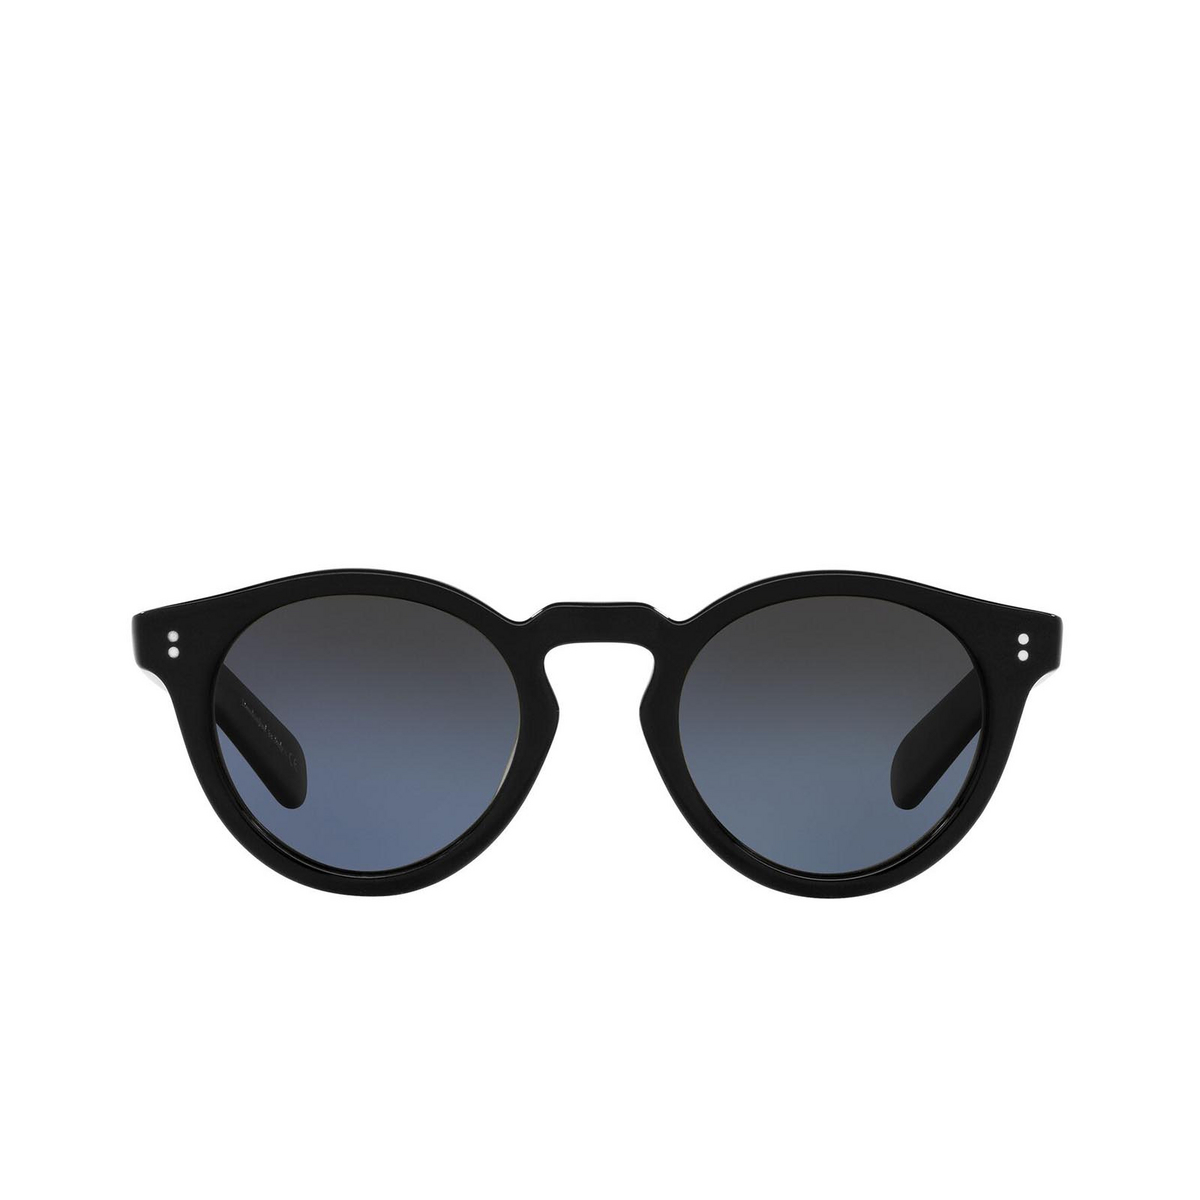 Oliver Peoples® Round Sunglasses: Martineaux OV5450SU color Black 1005P4 - front view.